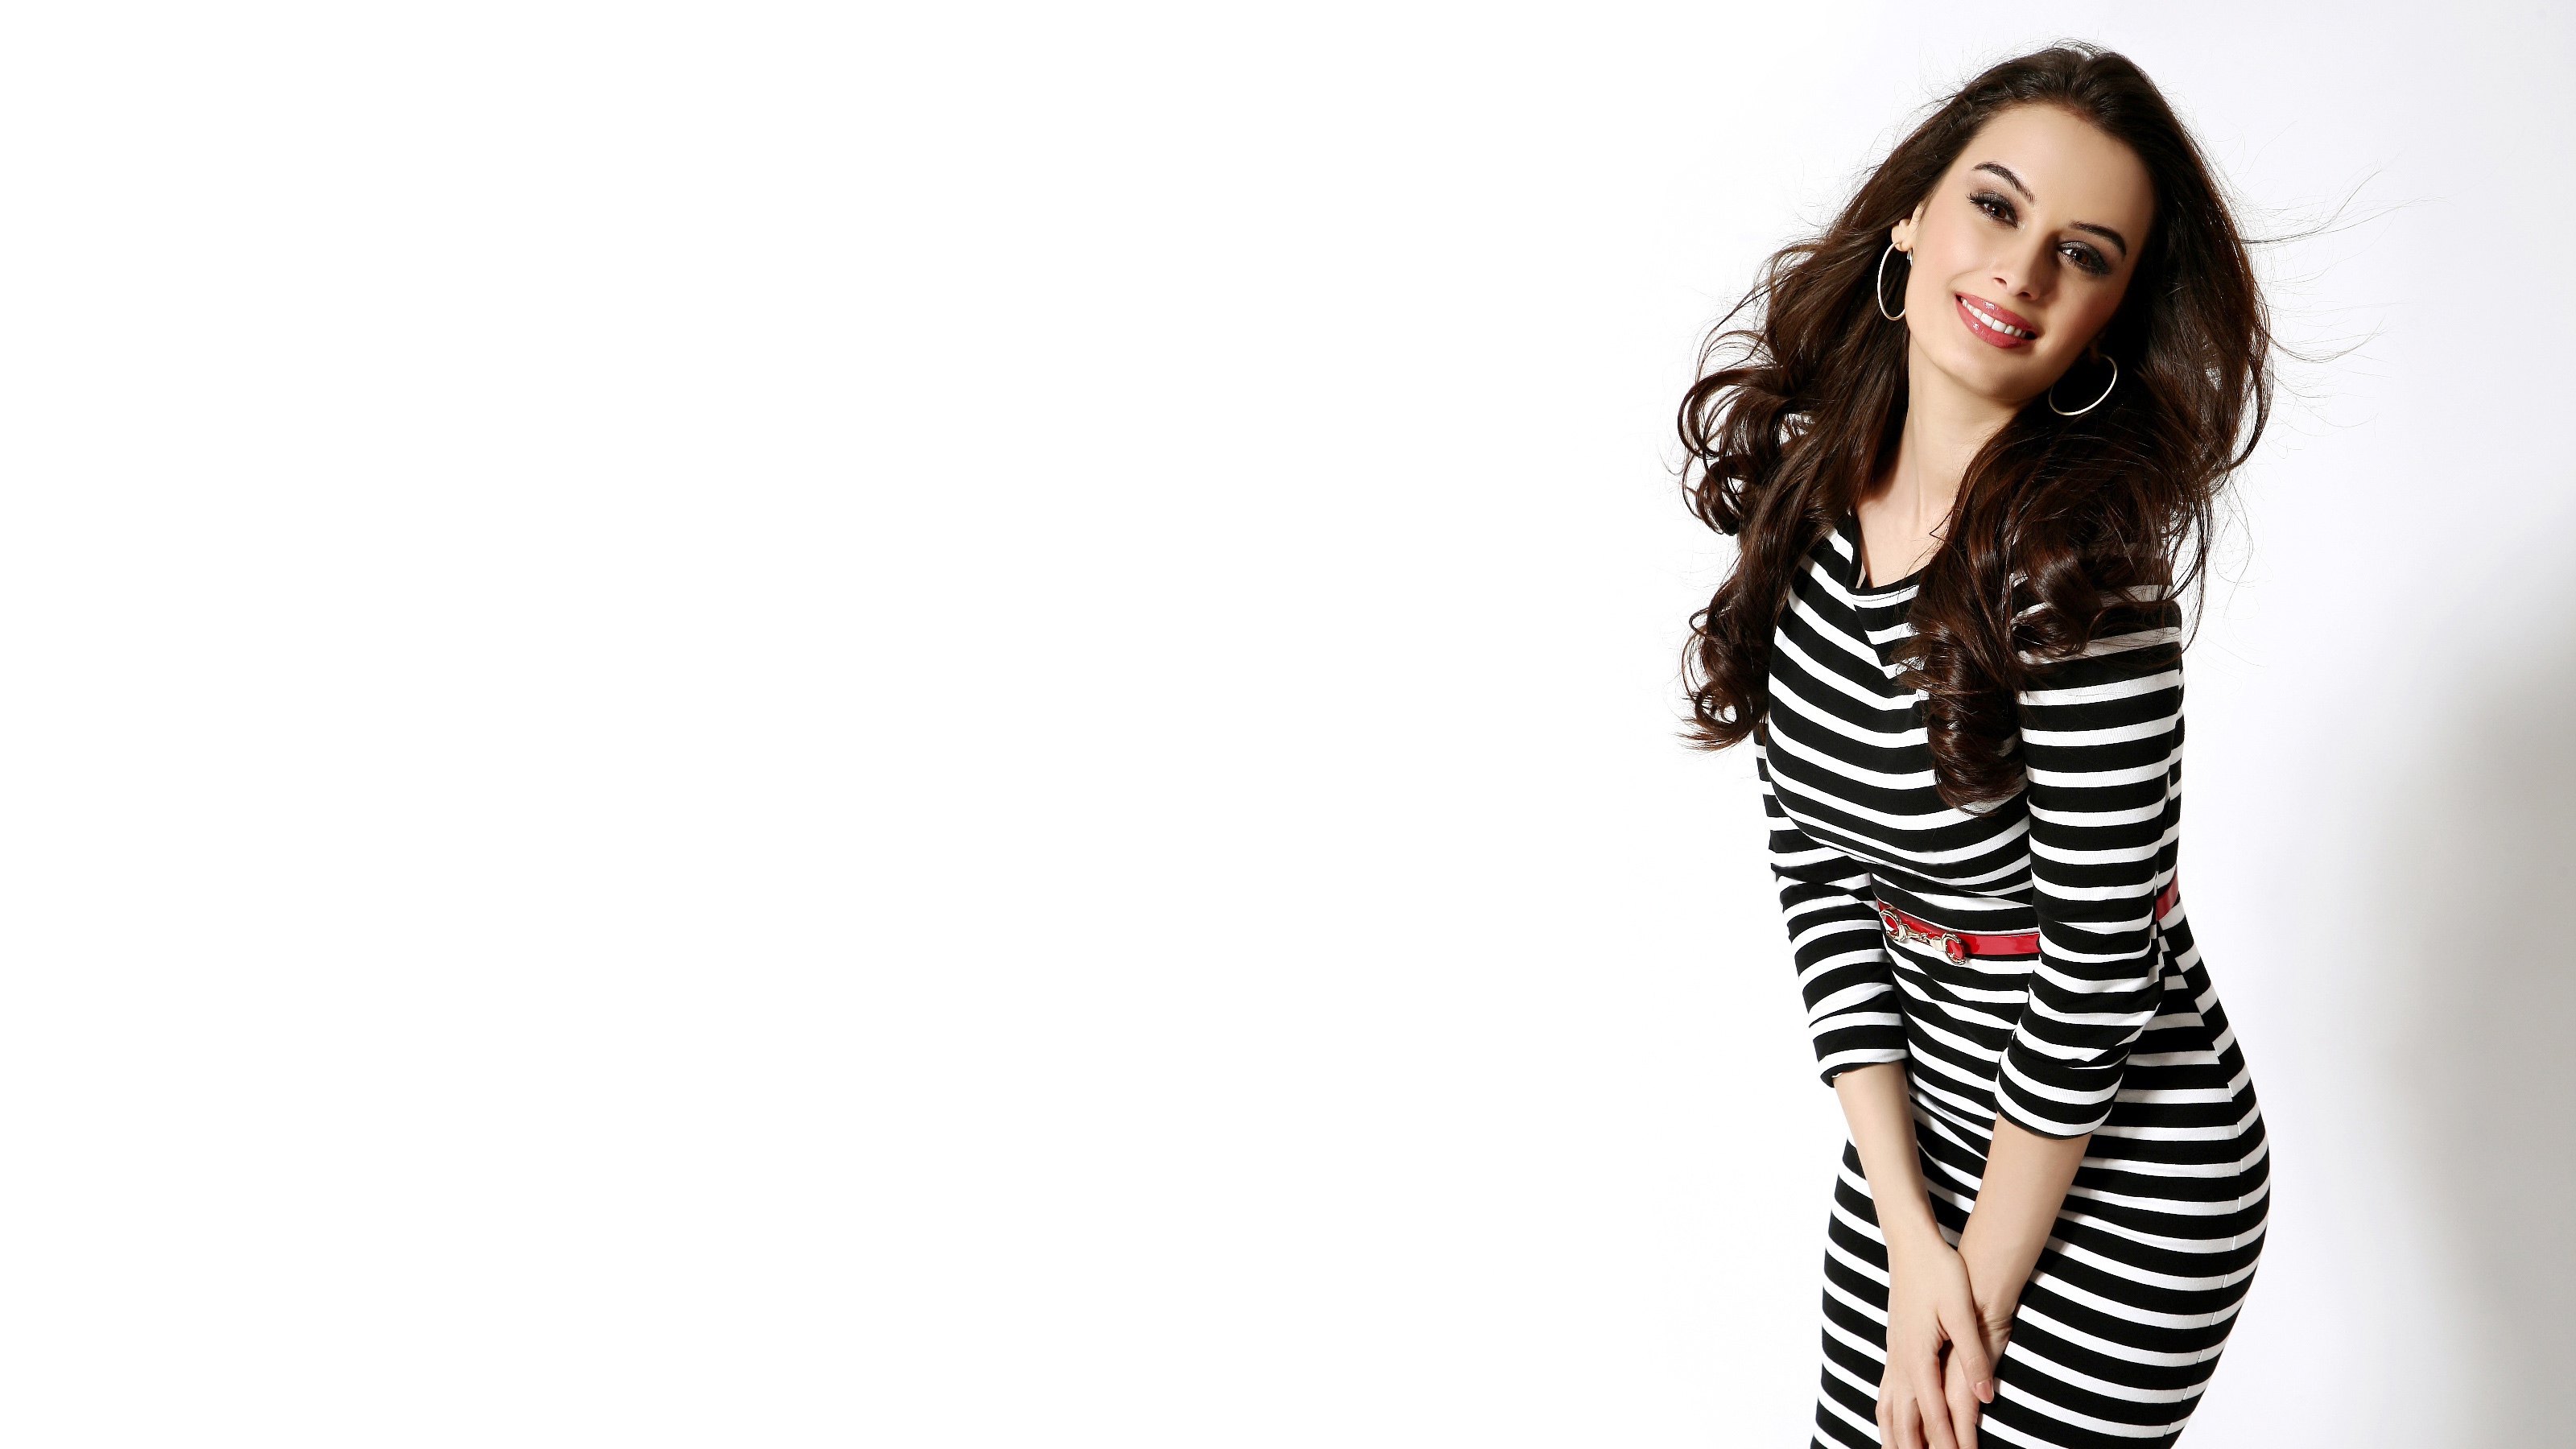 evelyn sharma wide wallpaper 60207